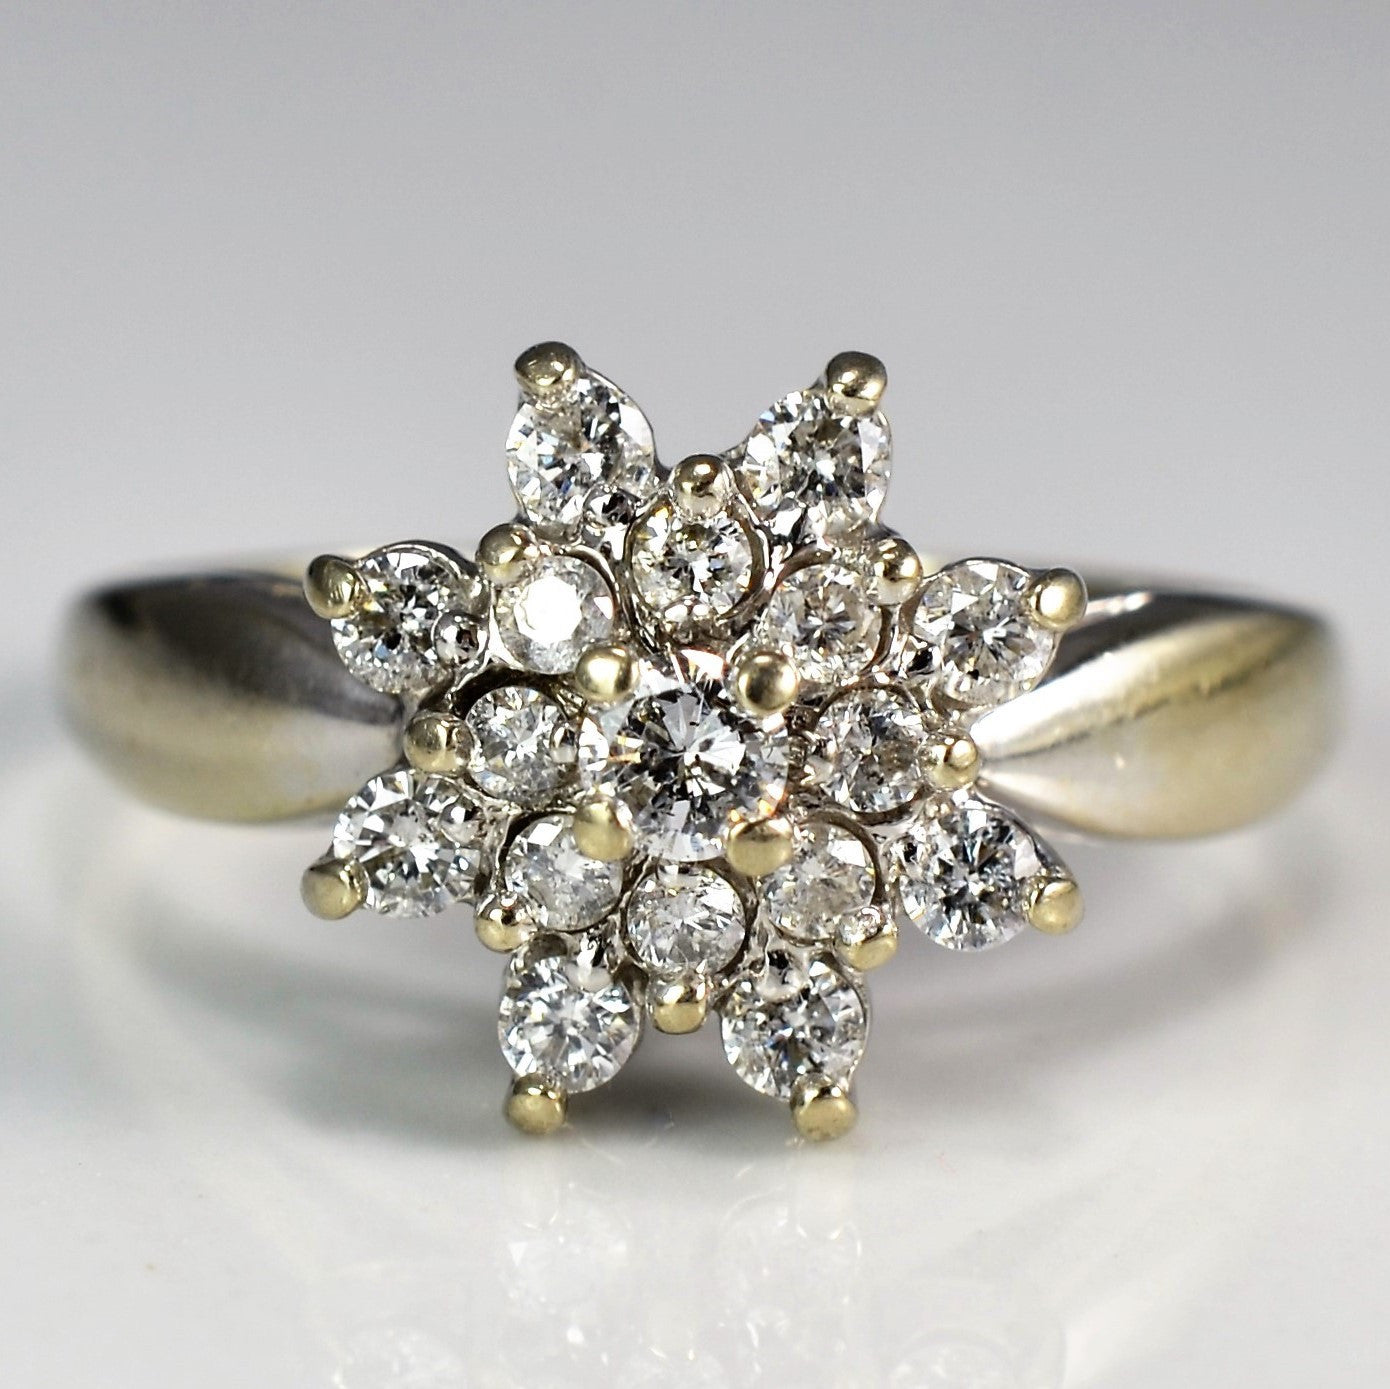 Starburst White Gold Diamond Ring | 0.40 ctw, SZ 7 |